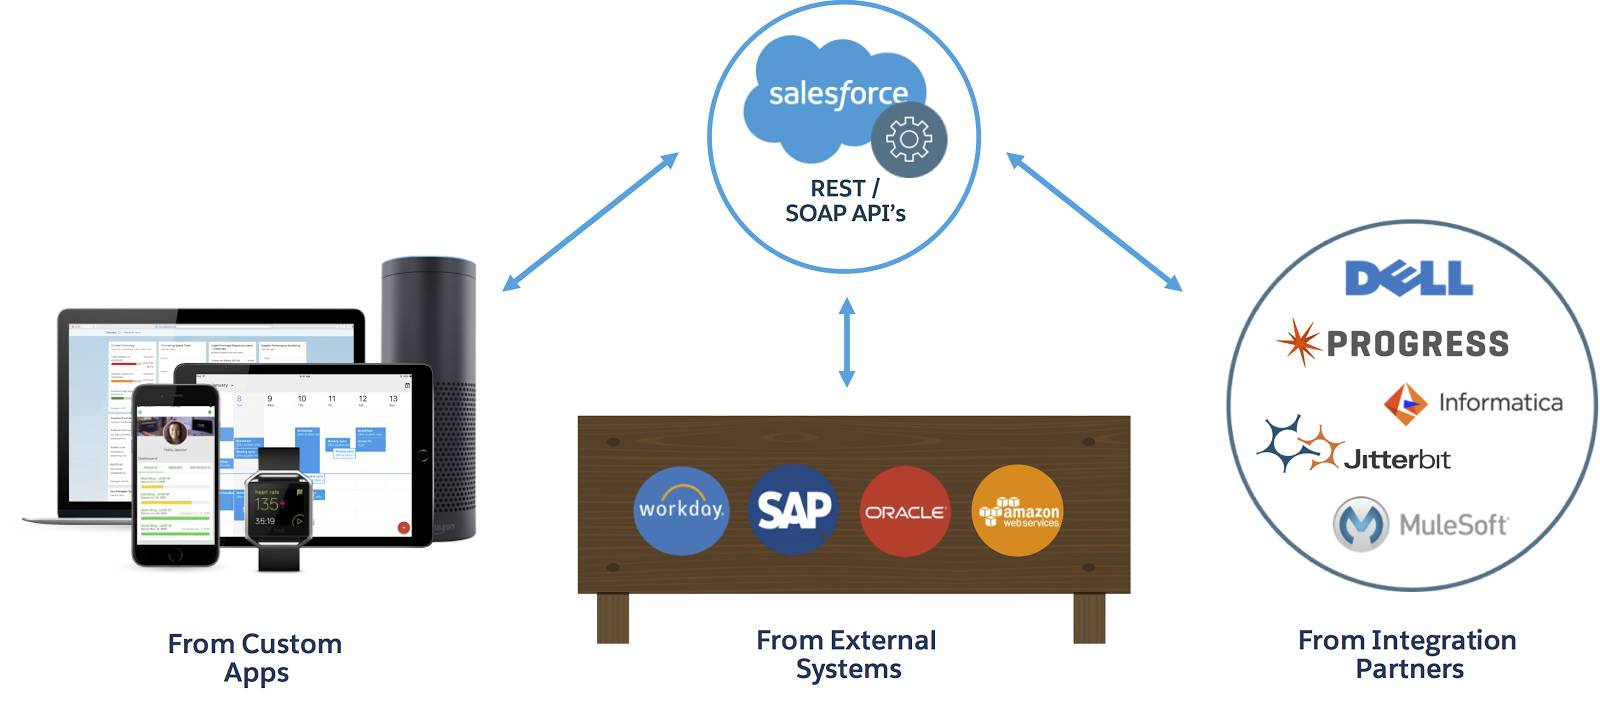 An infographic showing Salesforce REST and SOAP APIs connected to external systems (such as Workday, SAP, and Oracle), integration partners (such as MuleSoft and Jitterbit), and custom apps.